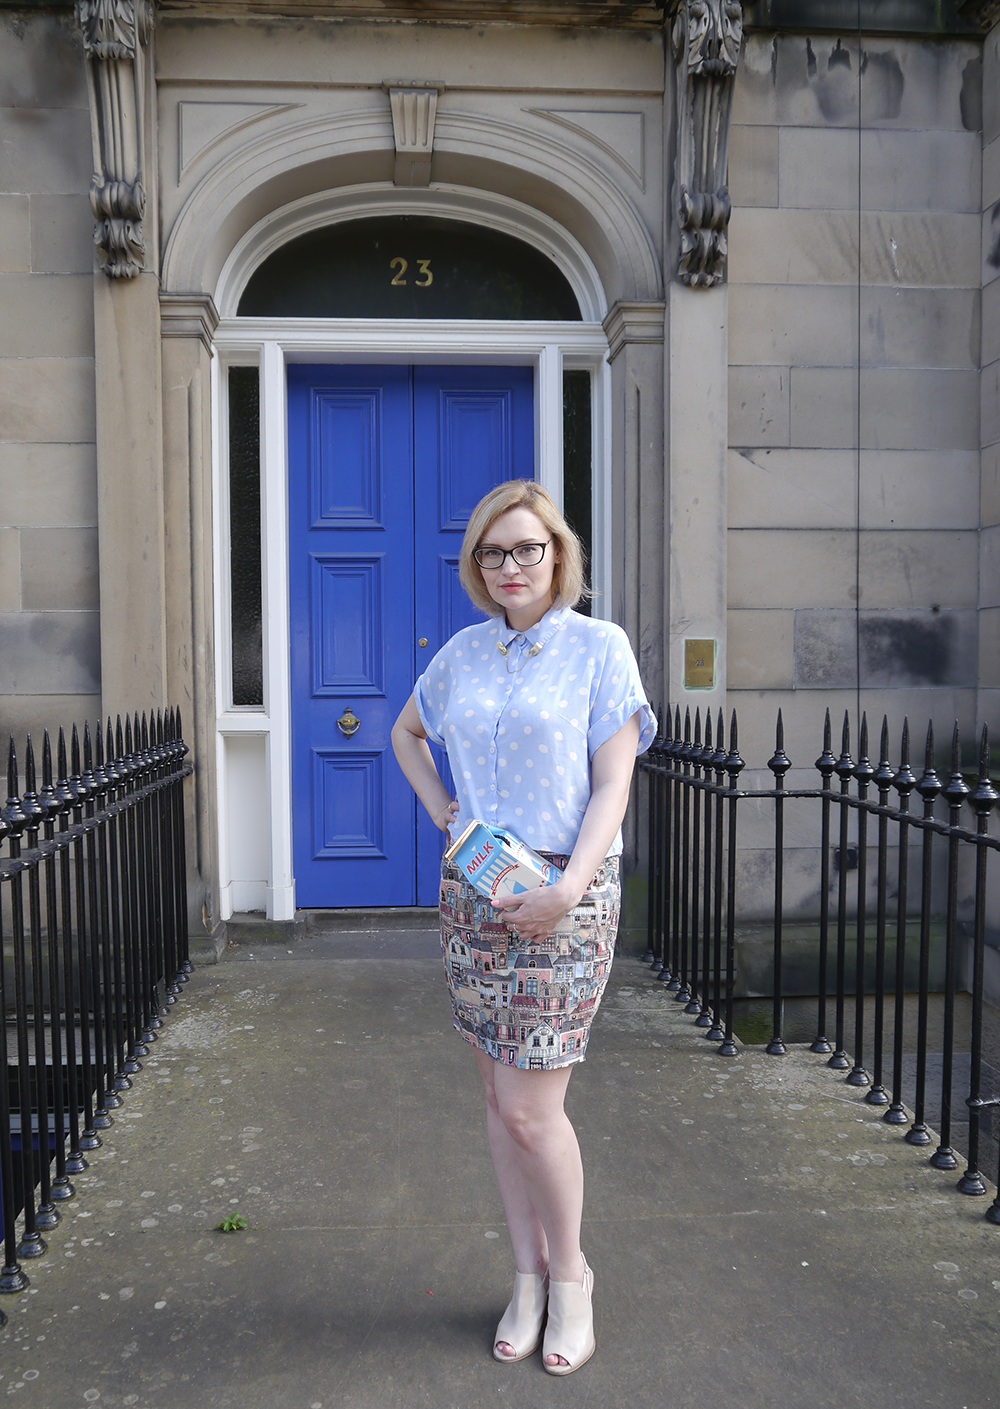 Scottish blogger, Edinburgh blogger, styling for body shape, style lessons, skinnydip novelty bag, edinburgh bloggers outfit of the day, british style finder, Scottish street style, quirky street style, dressing to a theme, food inspired outfit, pale girl style,